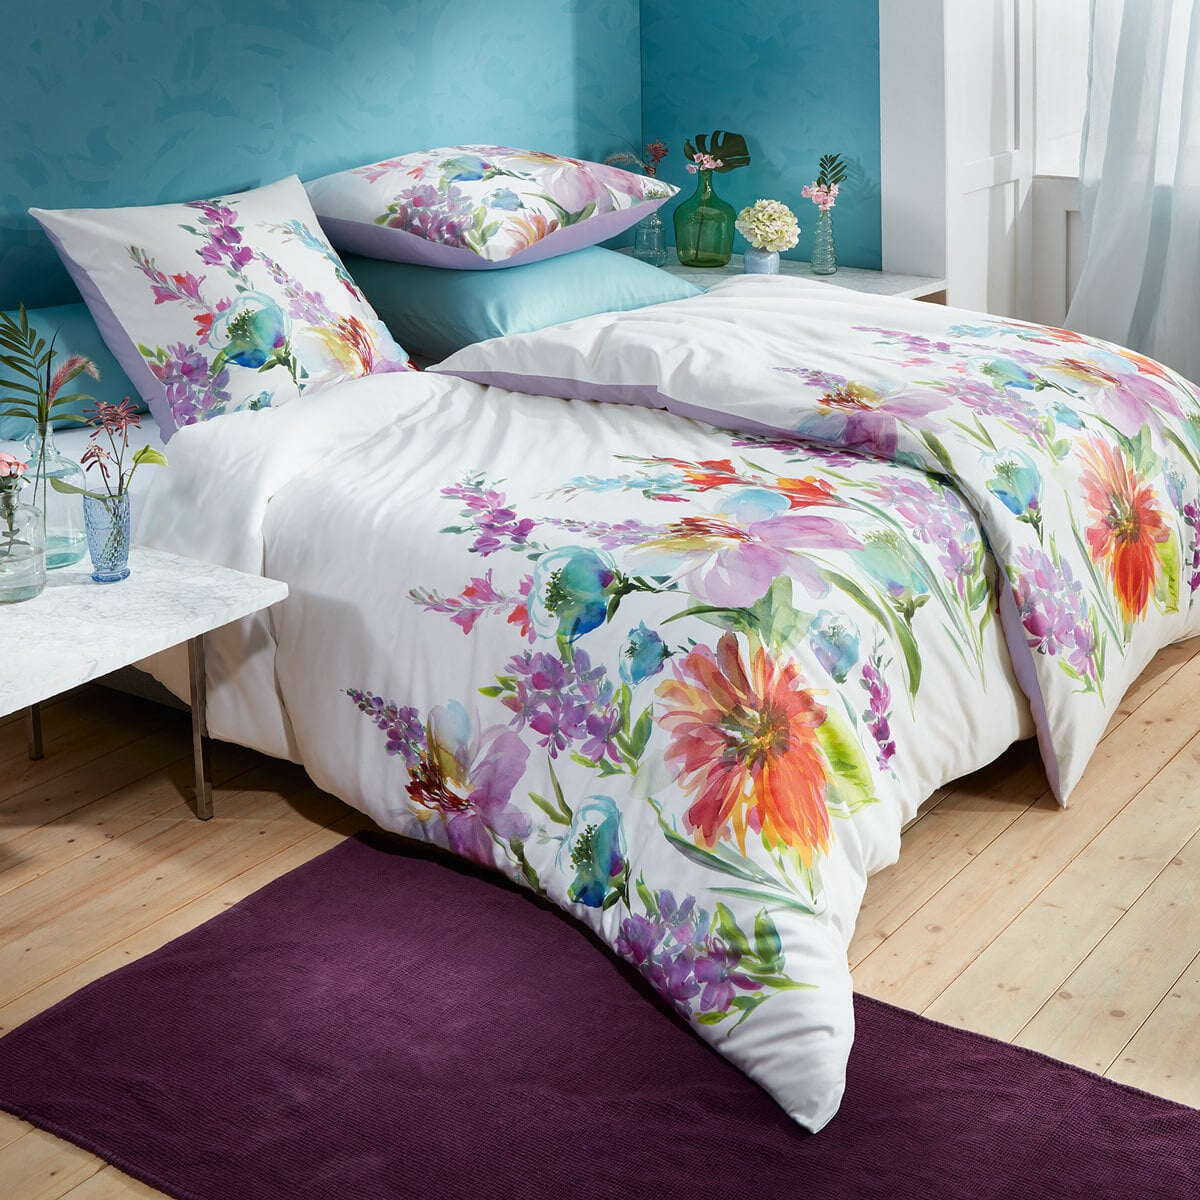 Bed Linens Sets Janine Mako Satin Bettwäsche 155x220 Paisley Braun 12056 07 1b Home Furniture Diy Crazyteen Vn